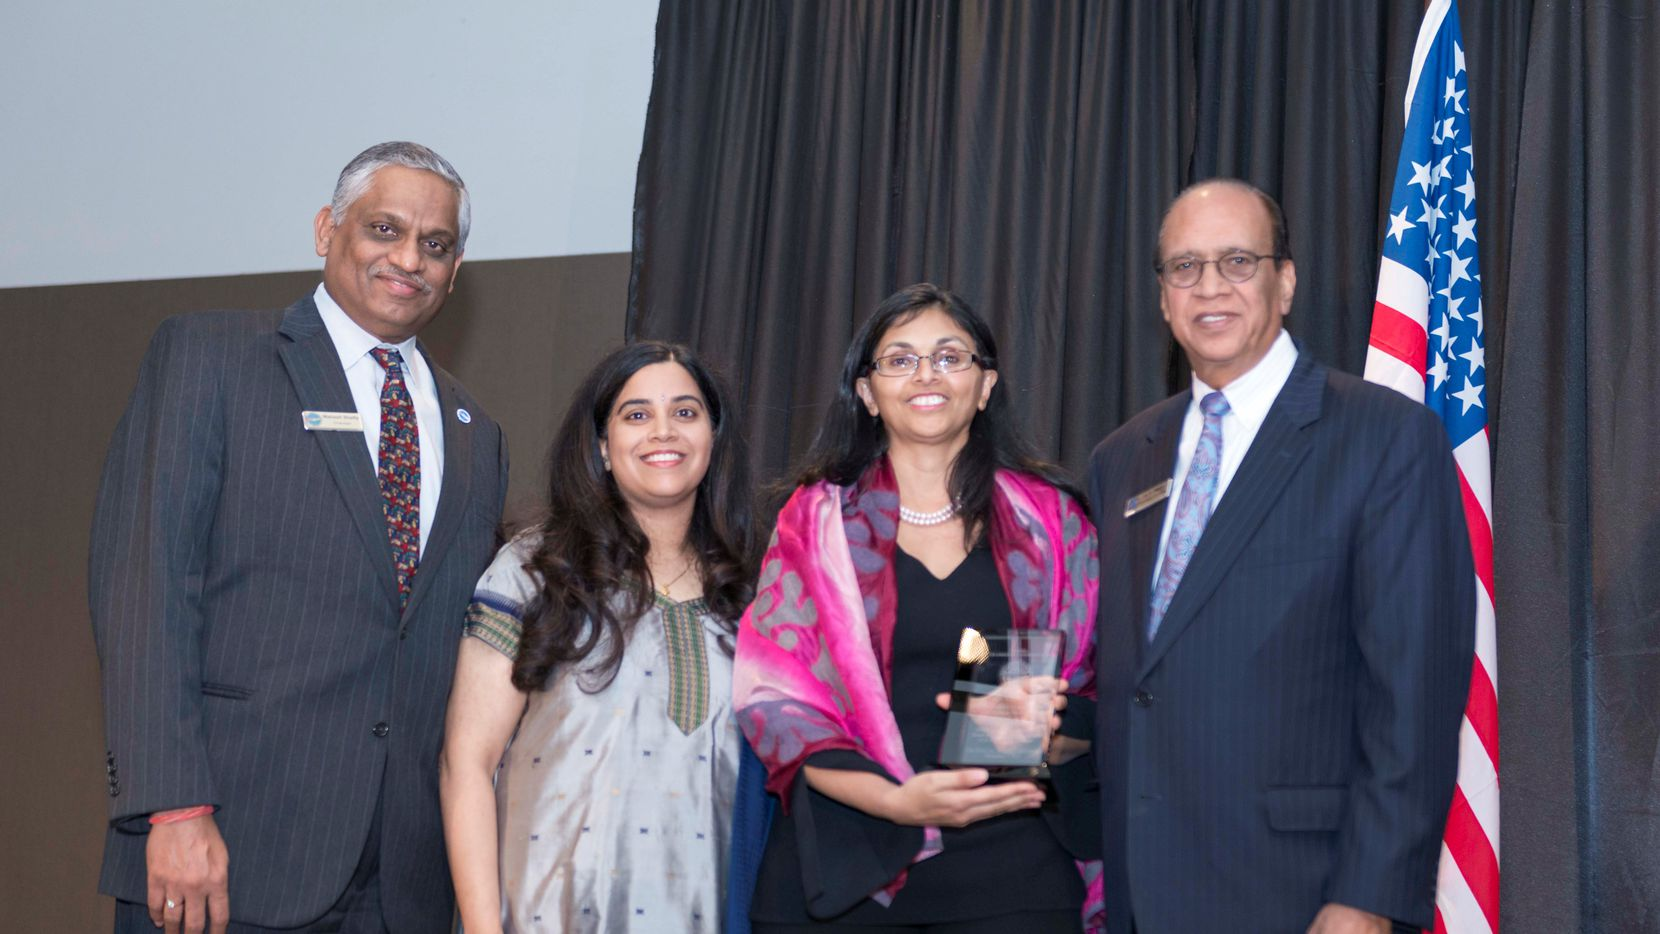 The U.S. India Chamber presented several awards at its Annual Awards Banquet at the Westin Galleria in Dallas.